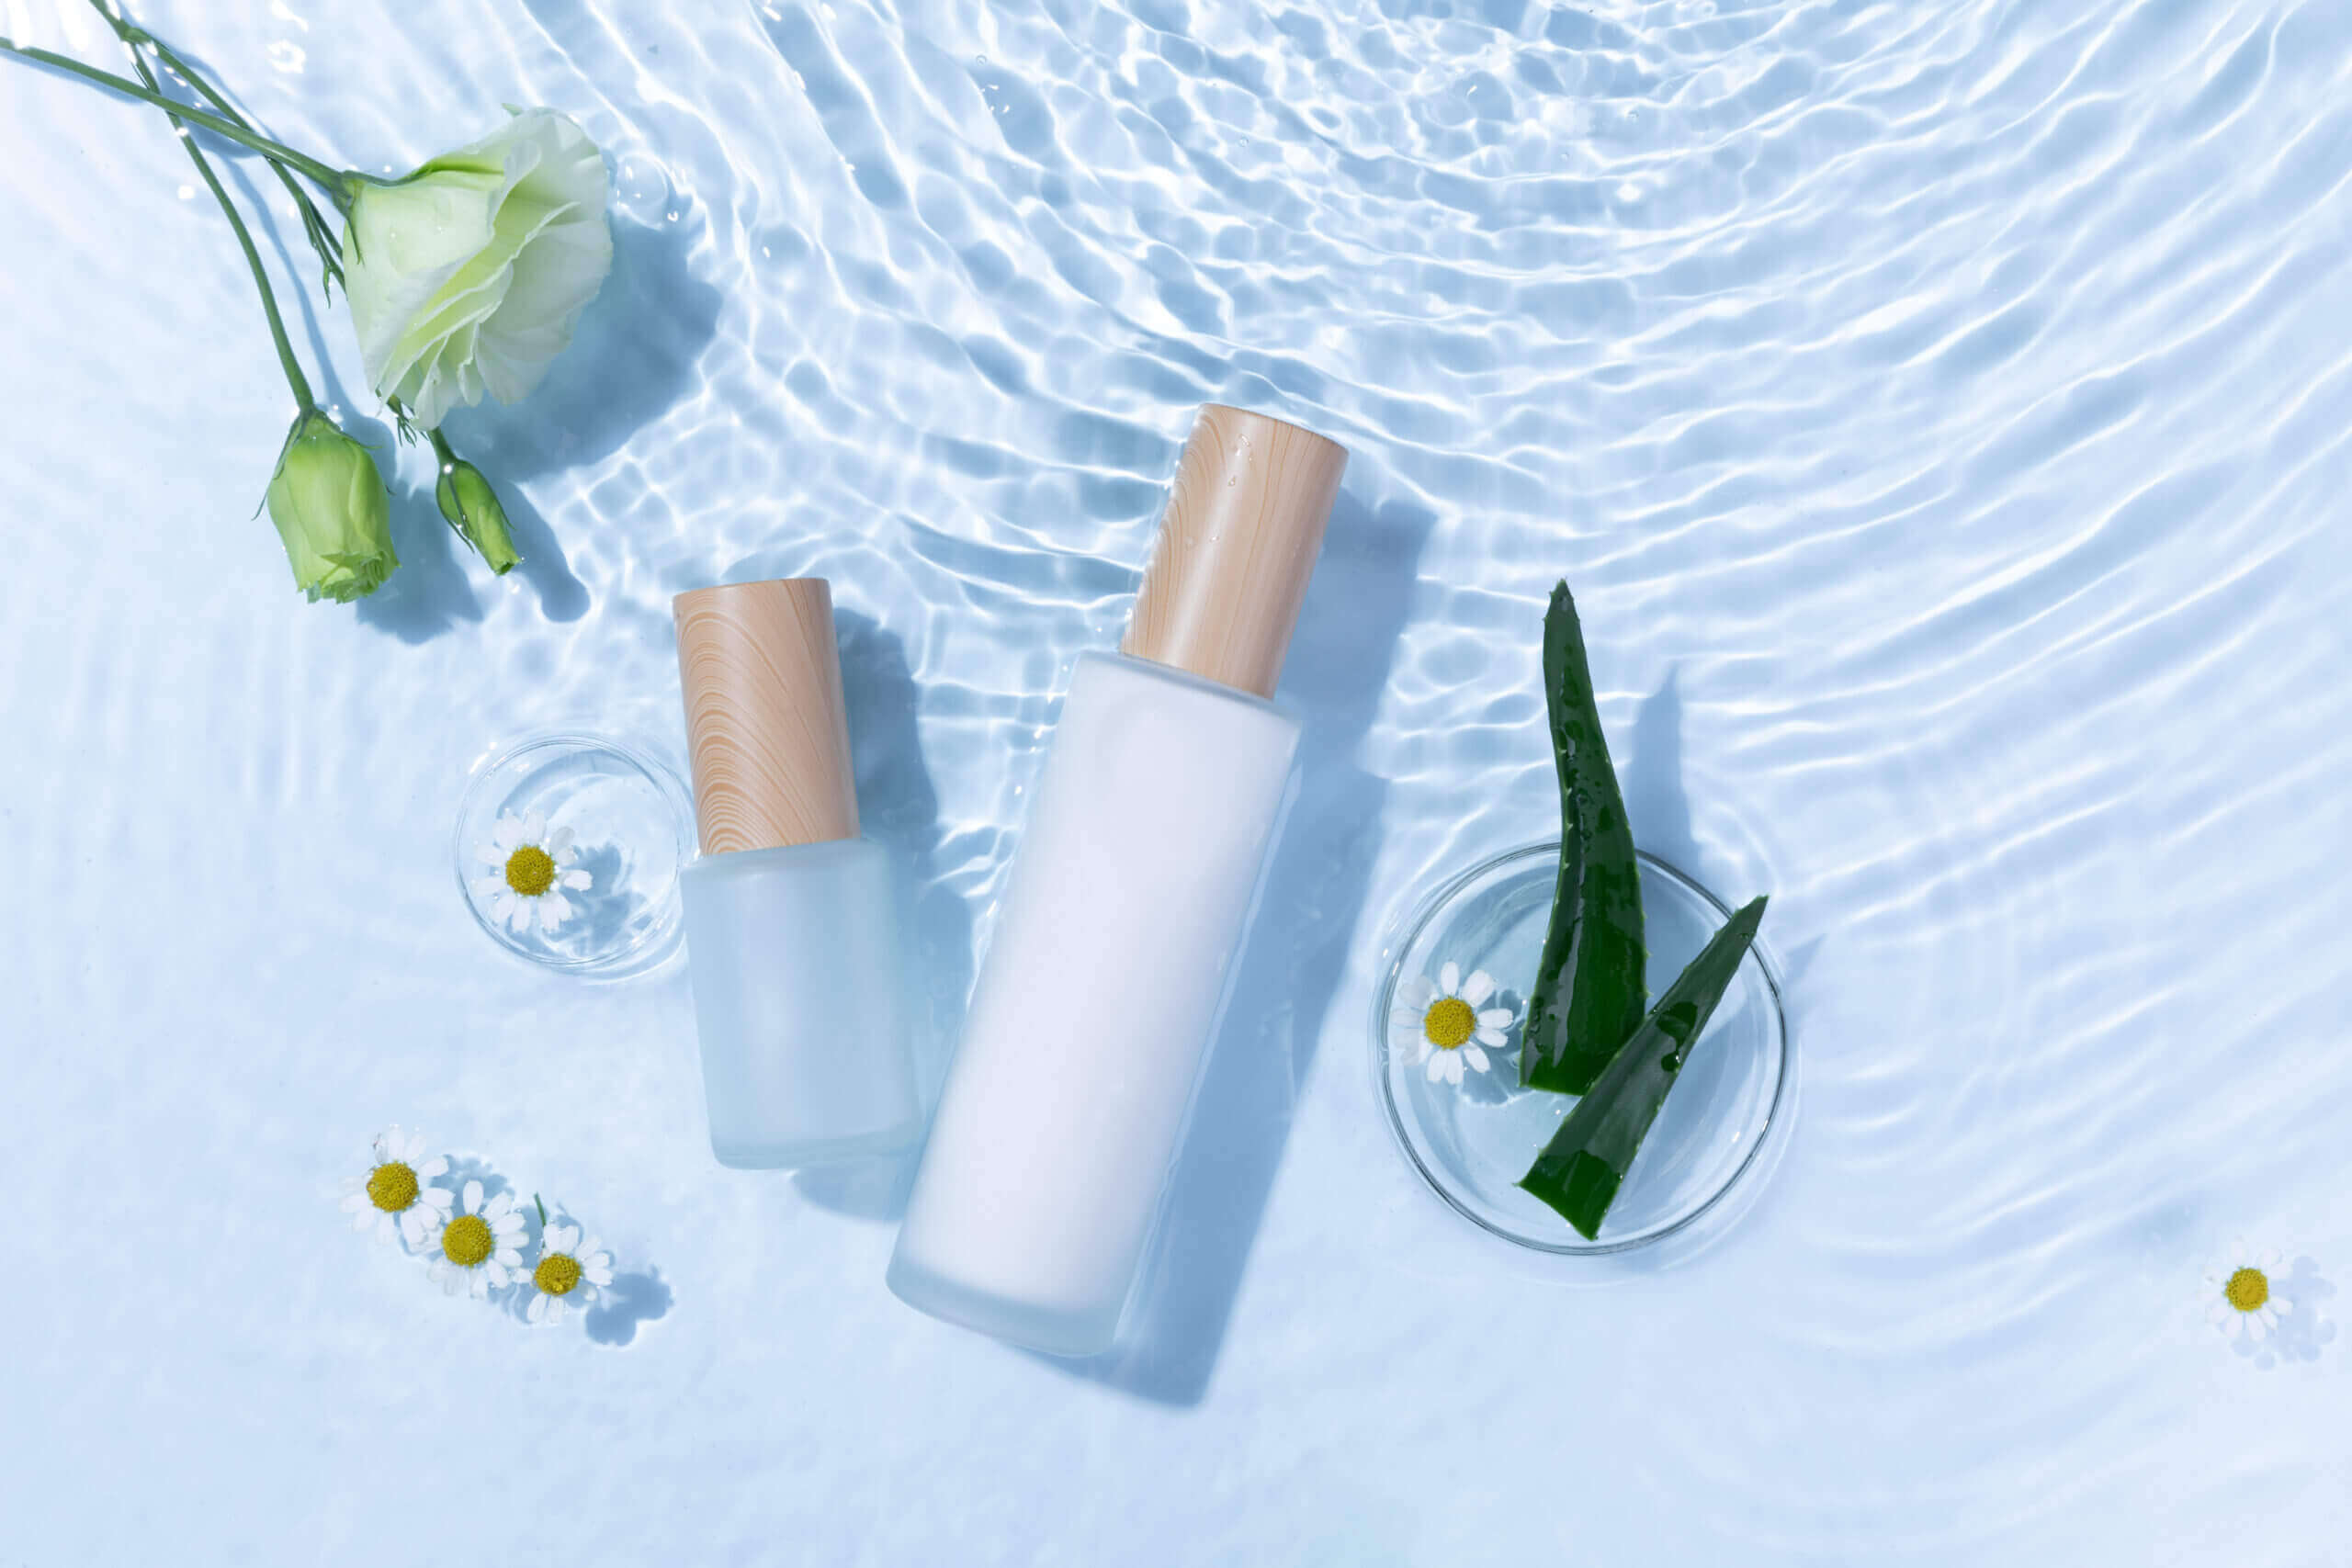 top view skincare bottles light blue water surface with aloe vera daisy flowers scaled